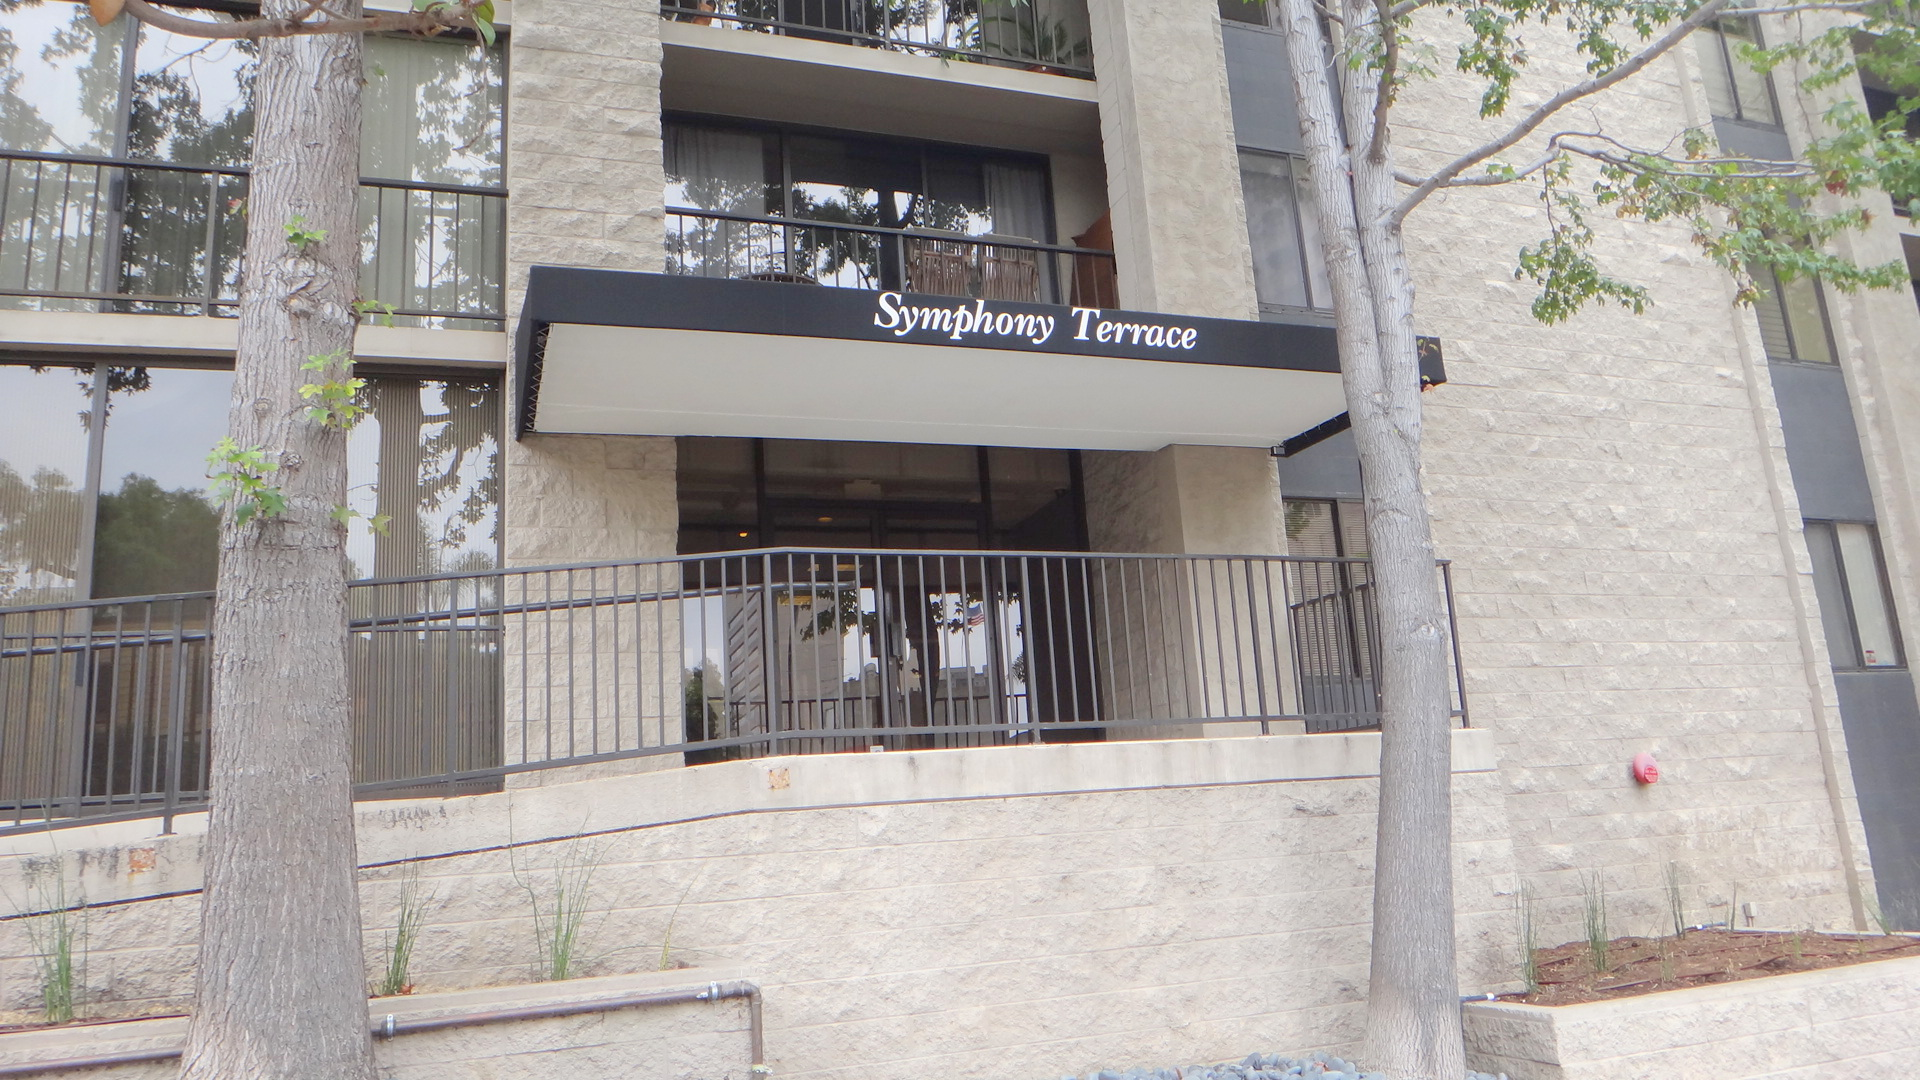 Symphony terrace located in downtown san diego s cortez hill for 8th avenue terrace